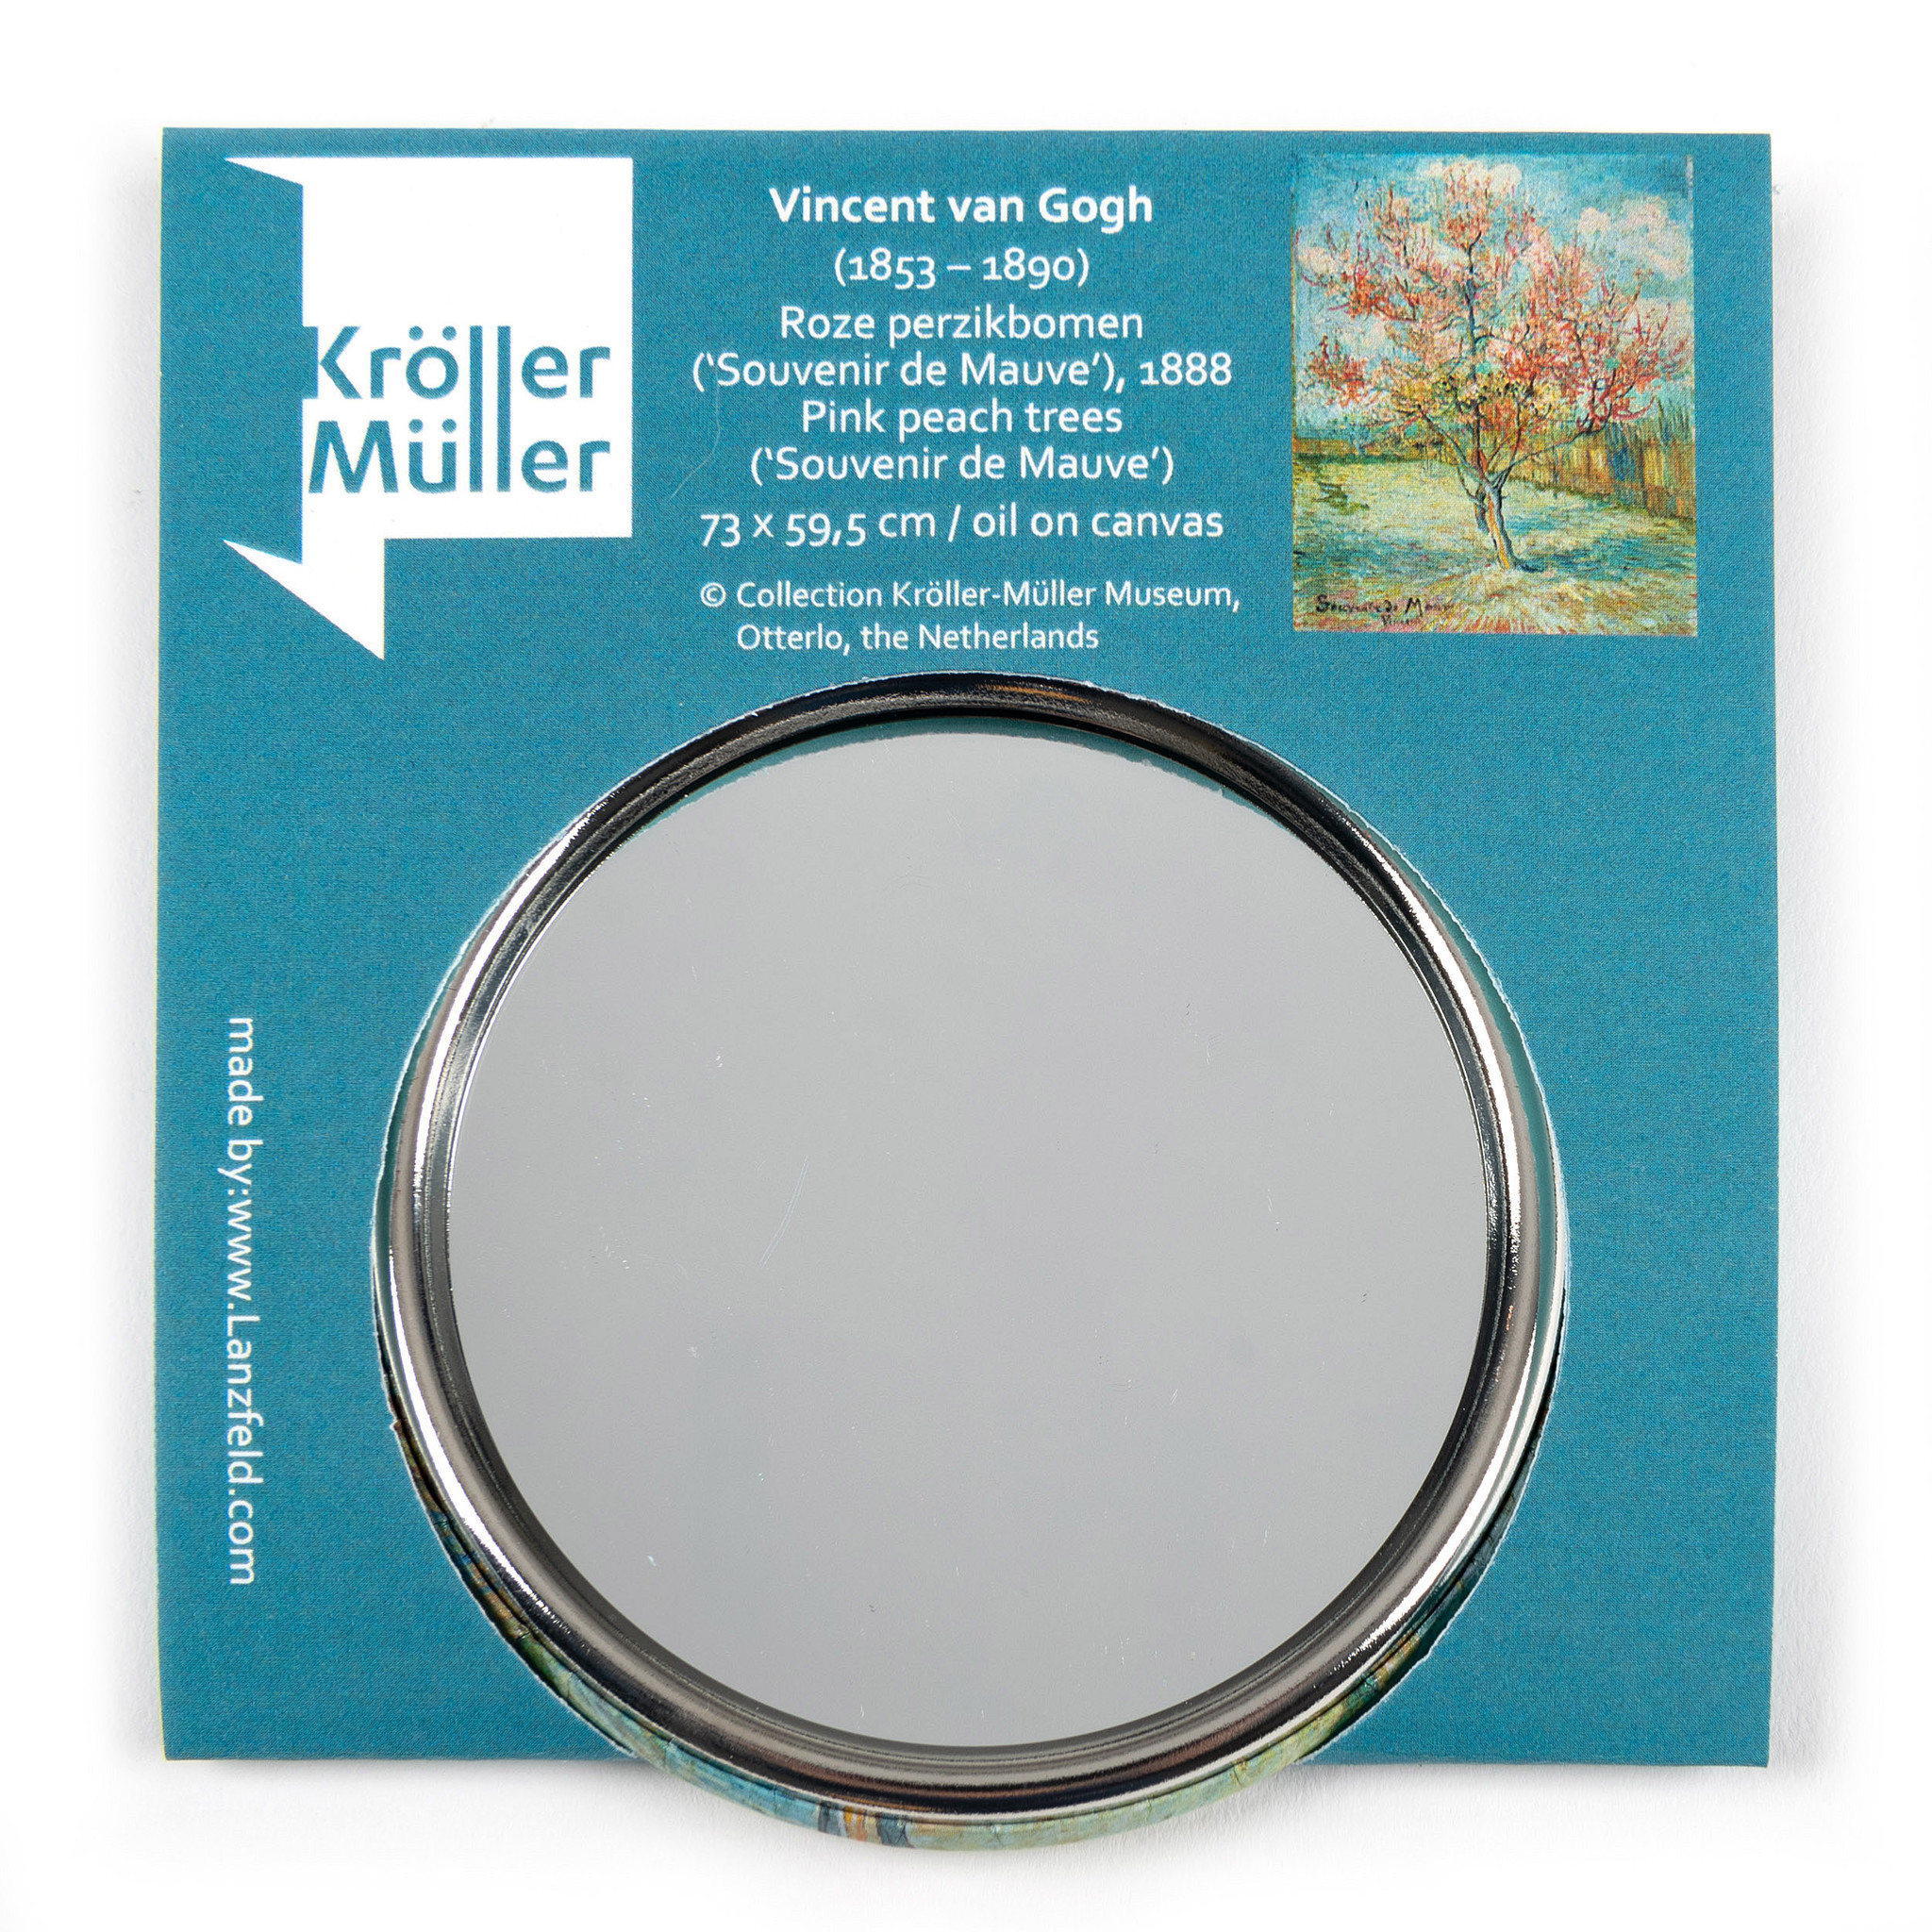 Make-up spiegel Van Gogh Roze perzikbomen